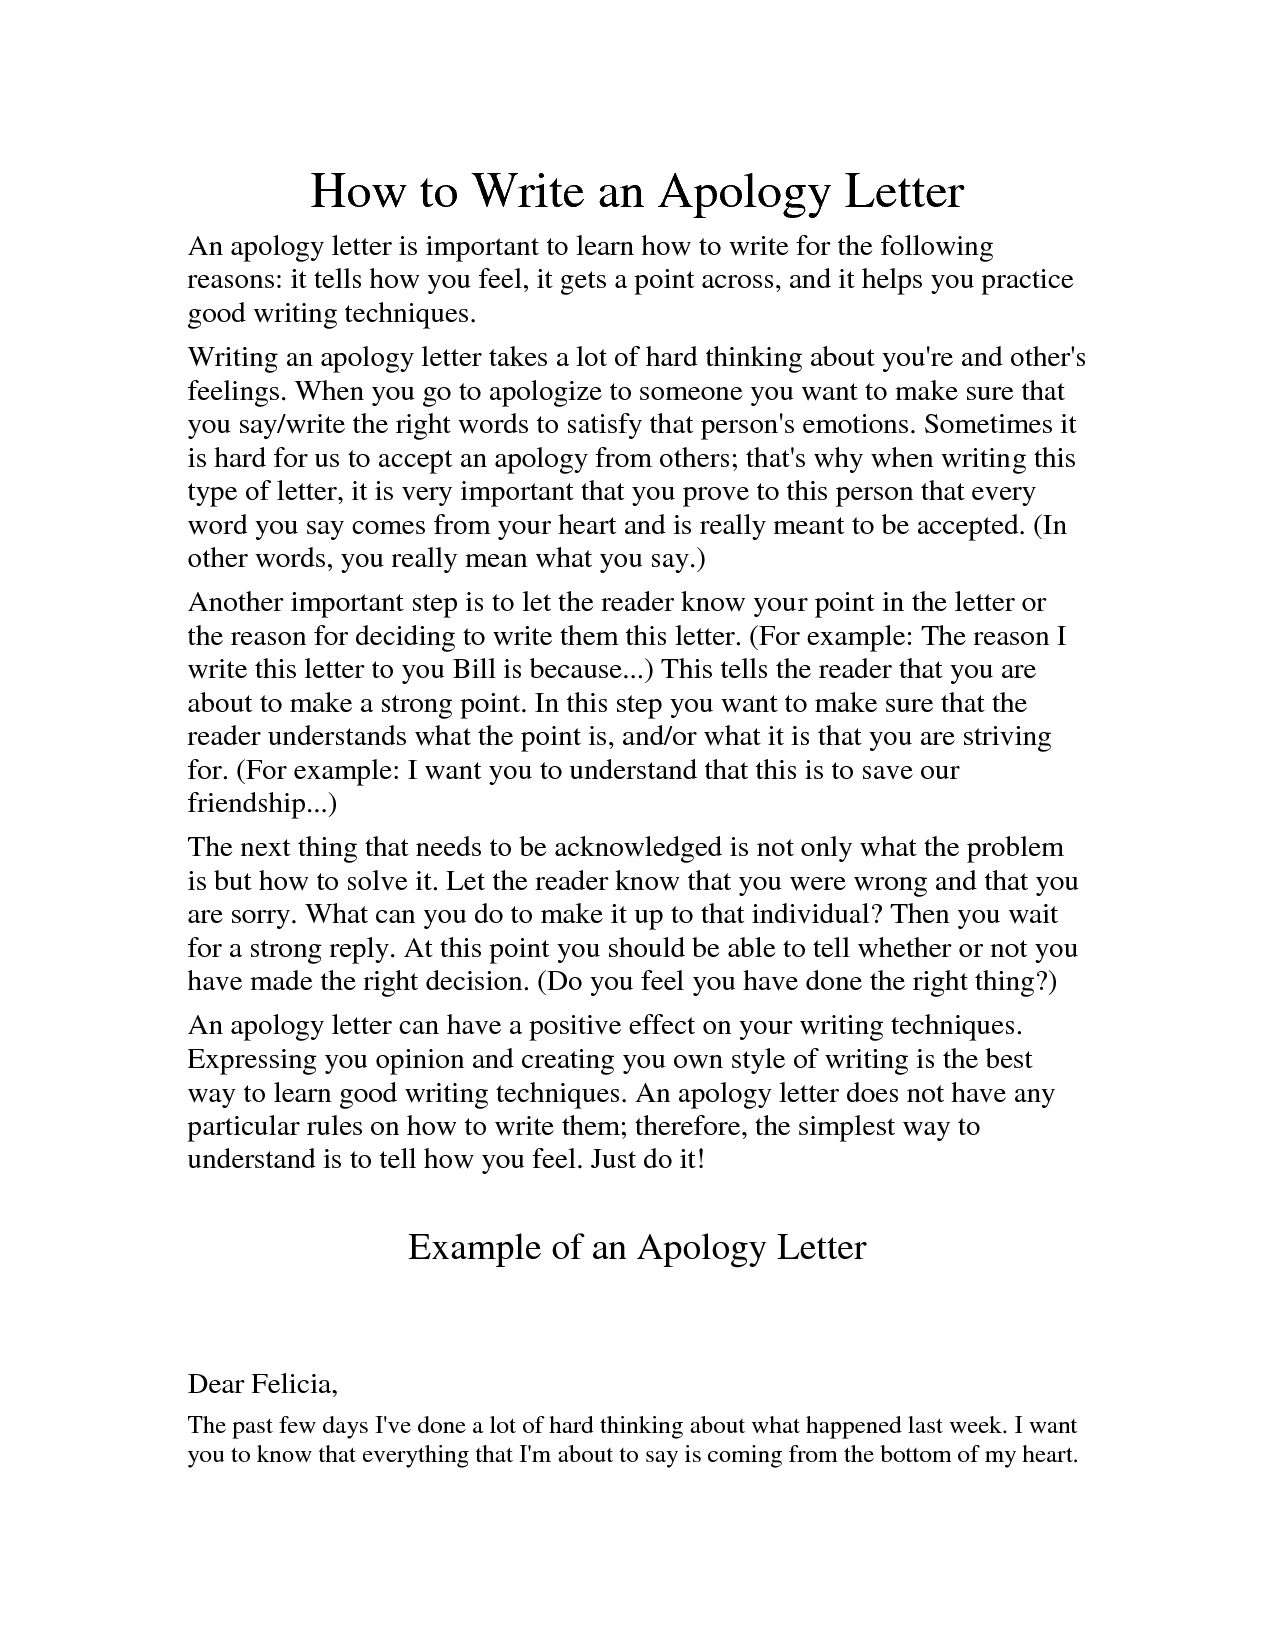 How to write an apology letter to a teacher sampleletter of apology how to write an apology letter to a teacher sampleletter of apology business letter sample spiritdancerdesigns Image collections